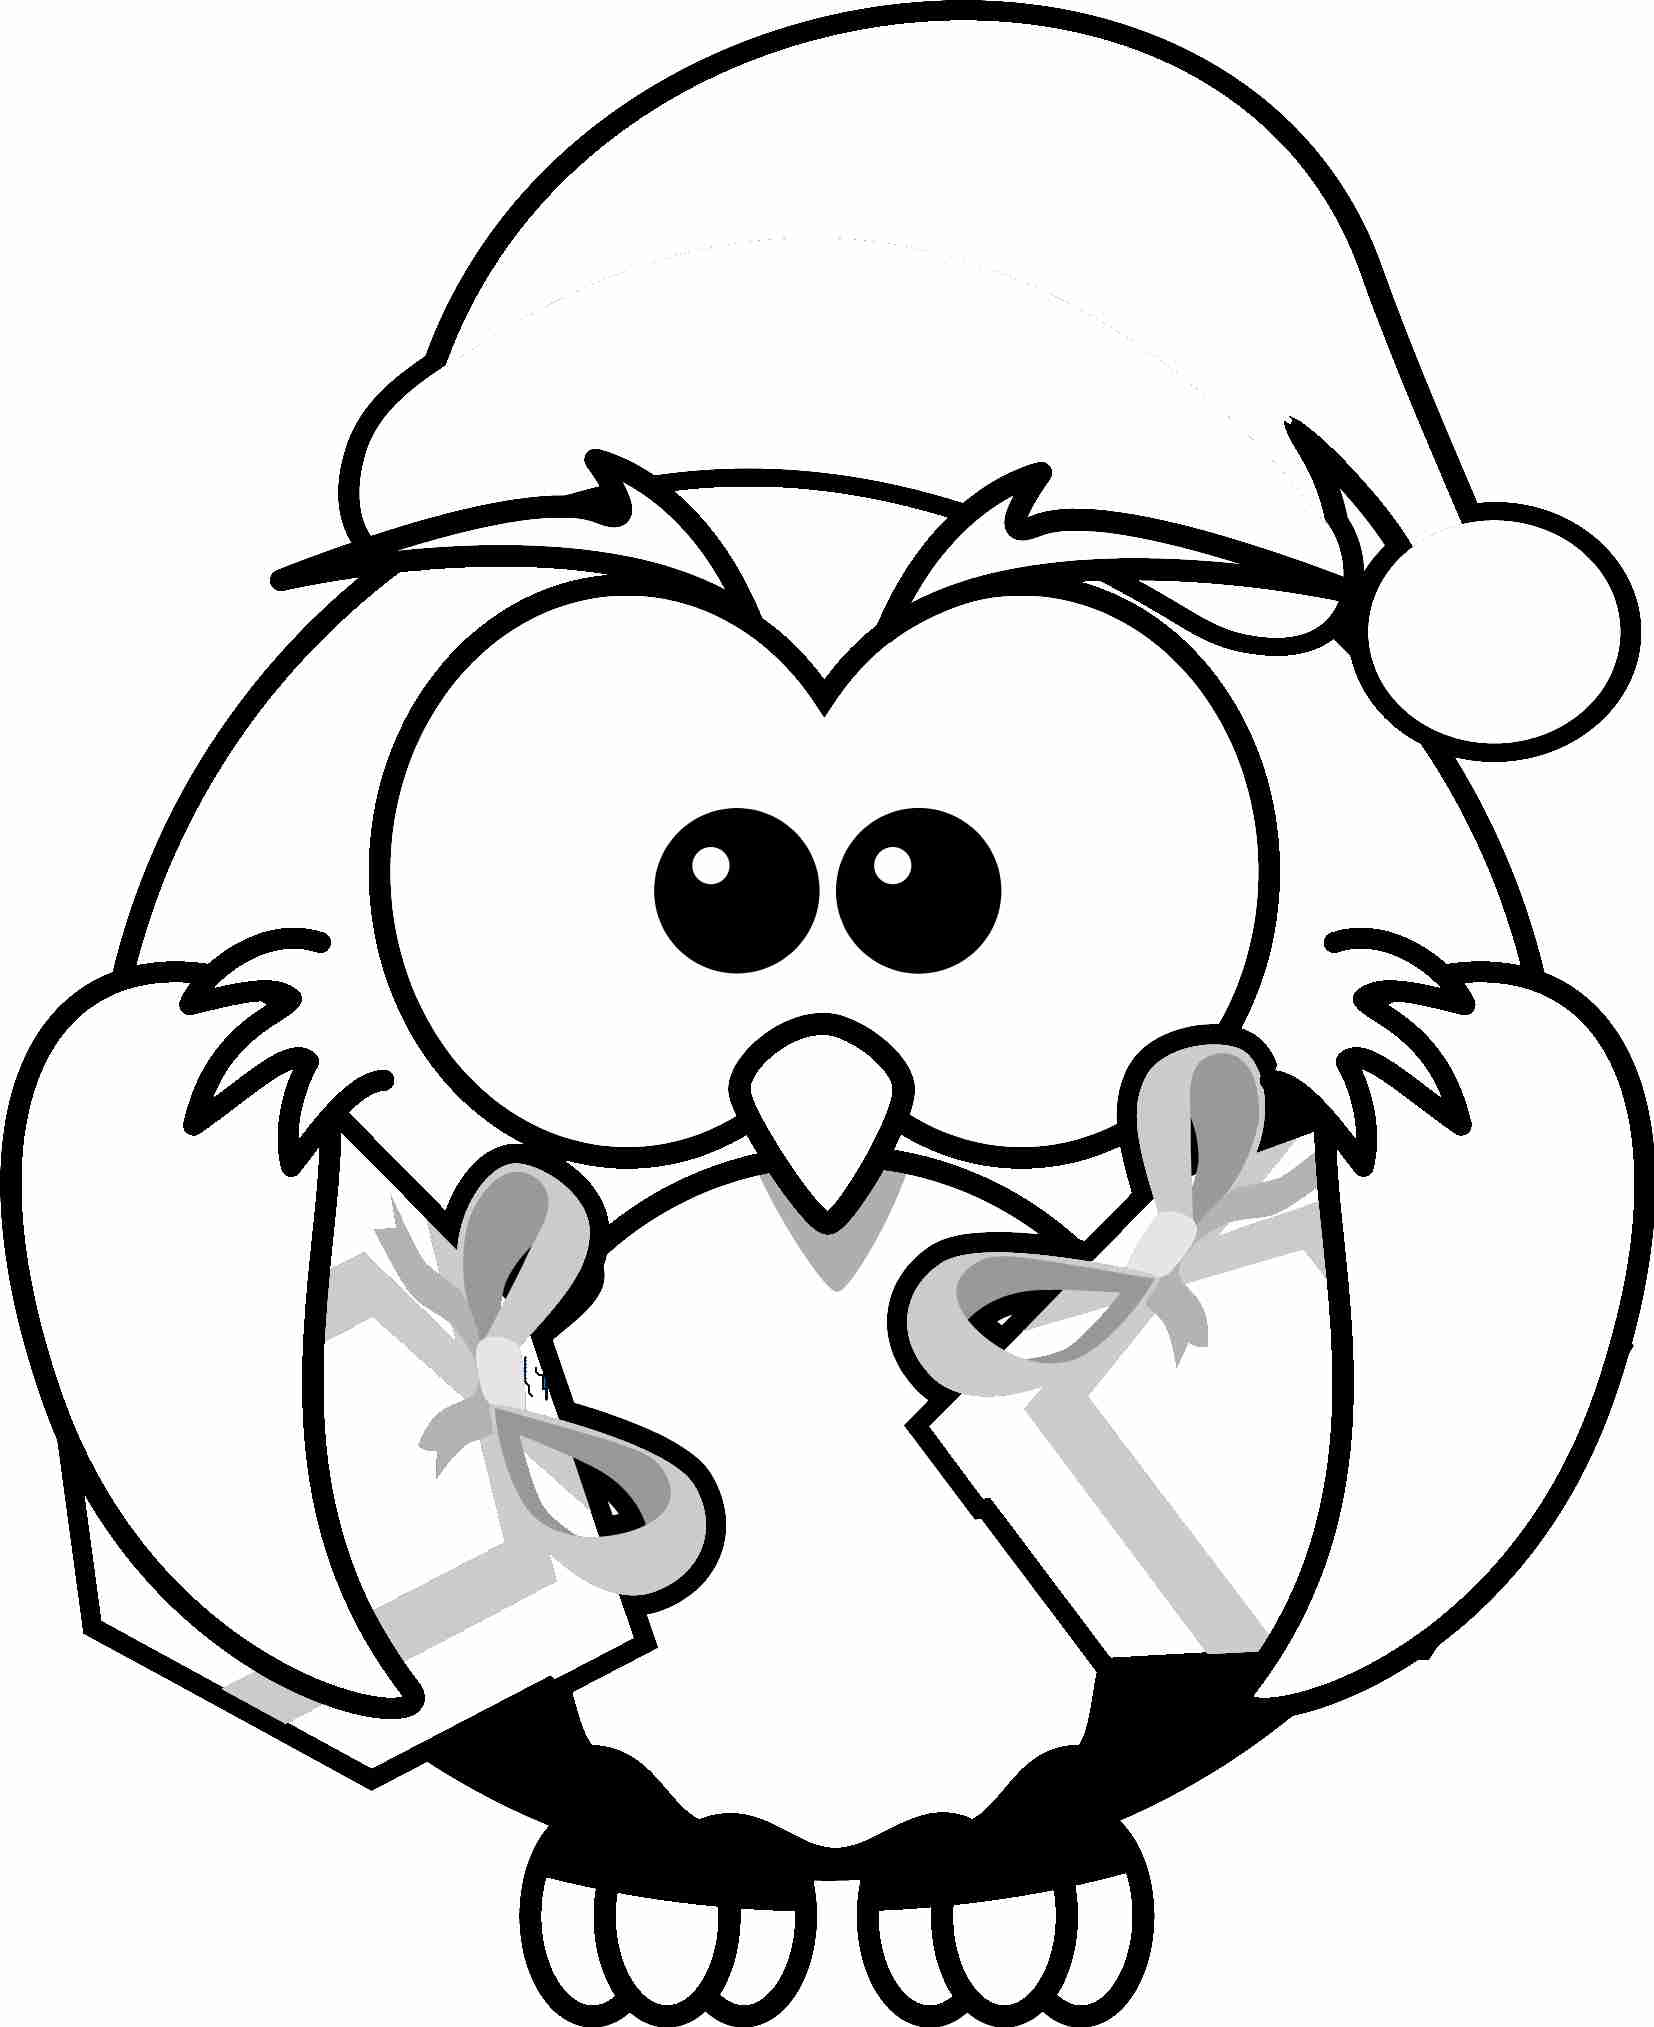 Christmas Coloring Pages Cute With Free Father Pictures To Colour Download Clip Art